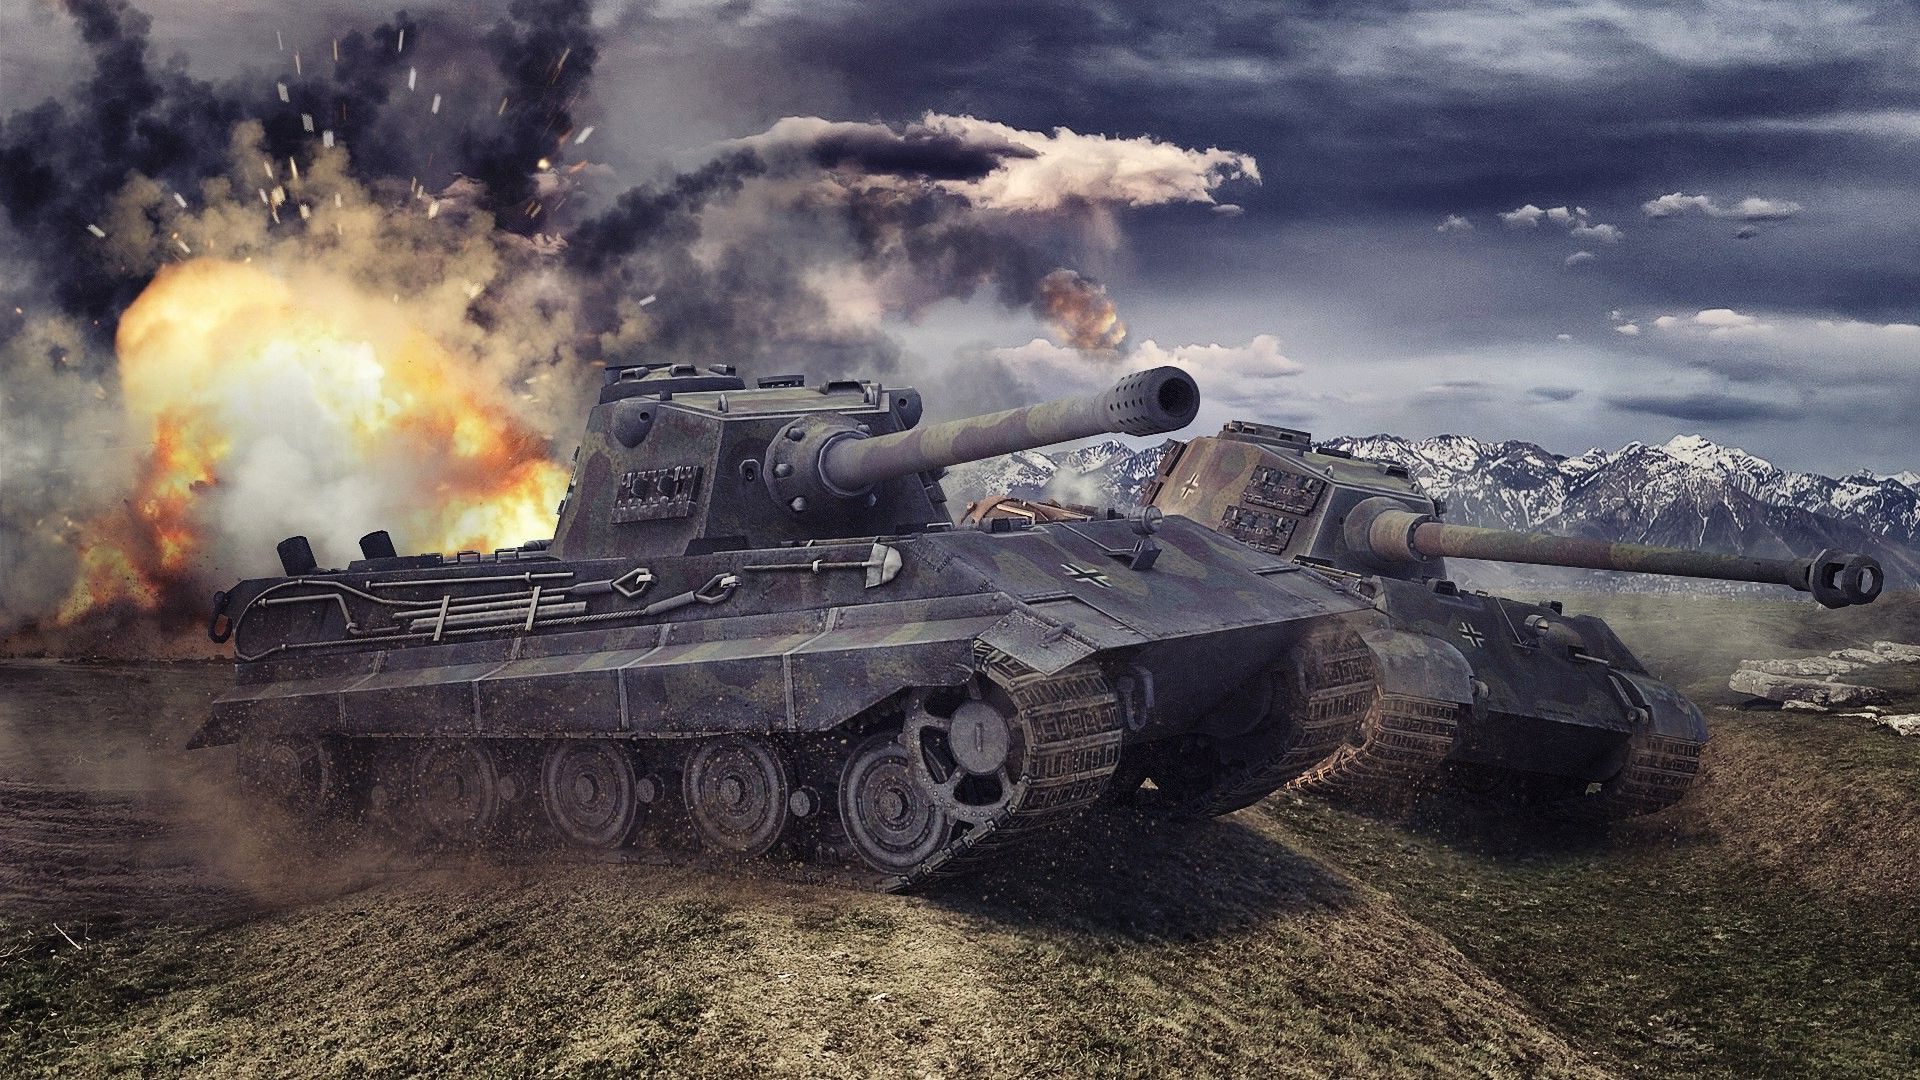 Tiger Tank Wallpapers Group with items HD Wallpapers